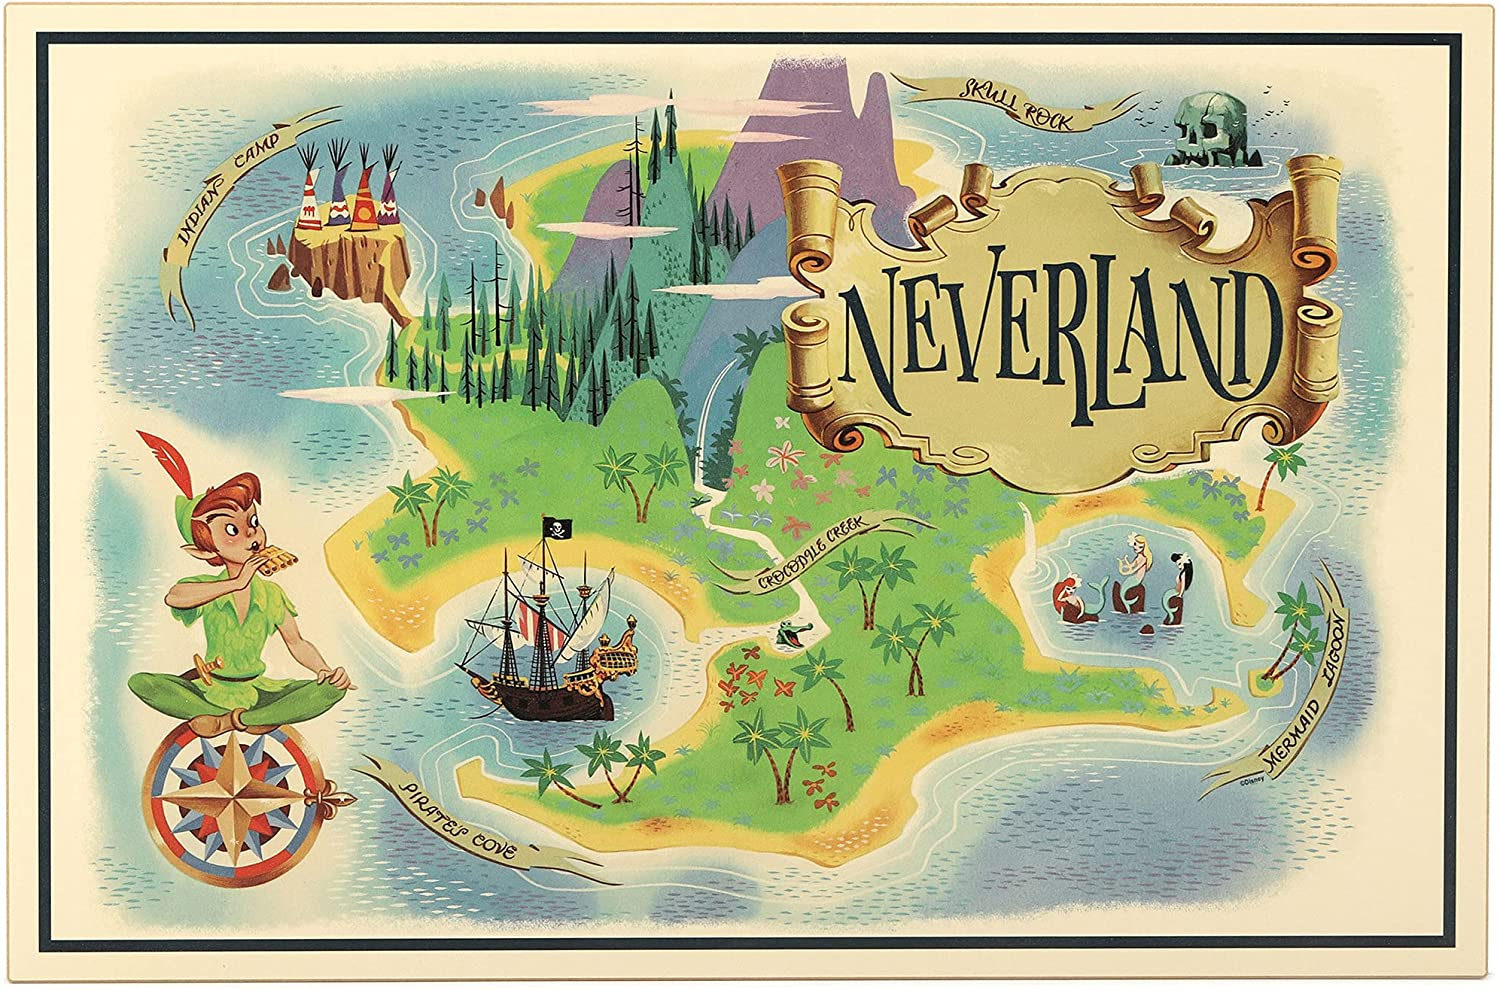 Open Road Brands Disney Peter Pan Neverland Map - Large 23.5 Inch x 15.5 Inch Wood Wall Decor for Kids' Room, Play Room, Bedroom, or Nursery